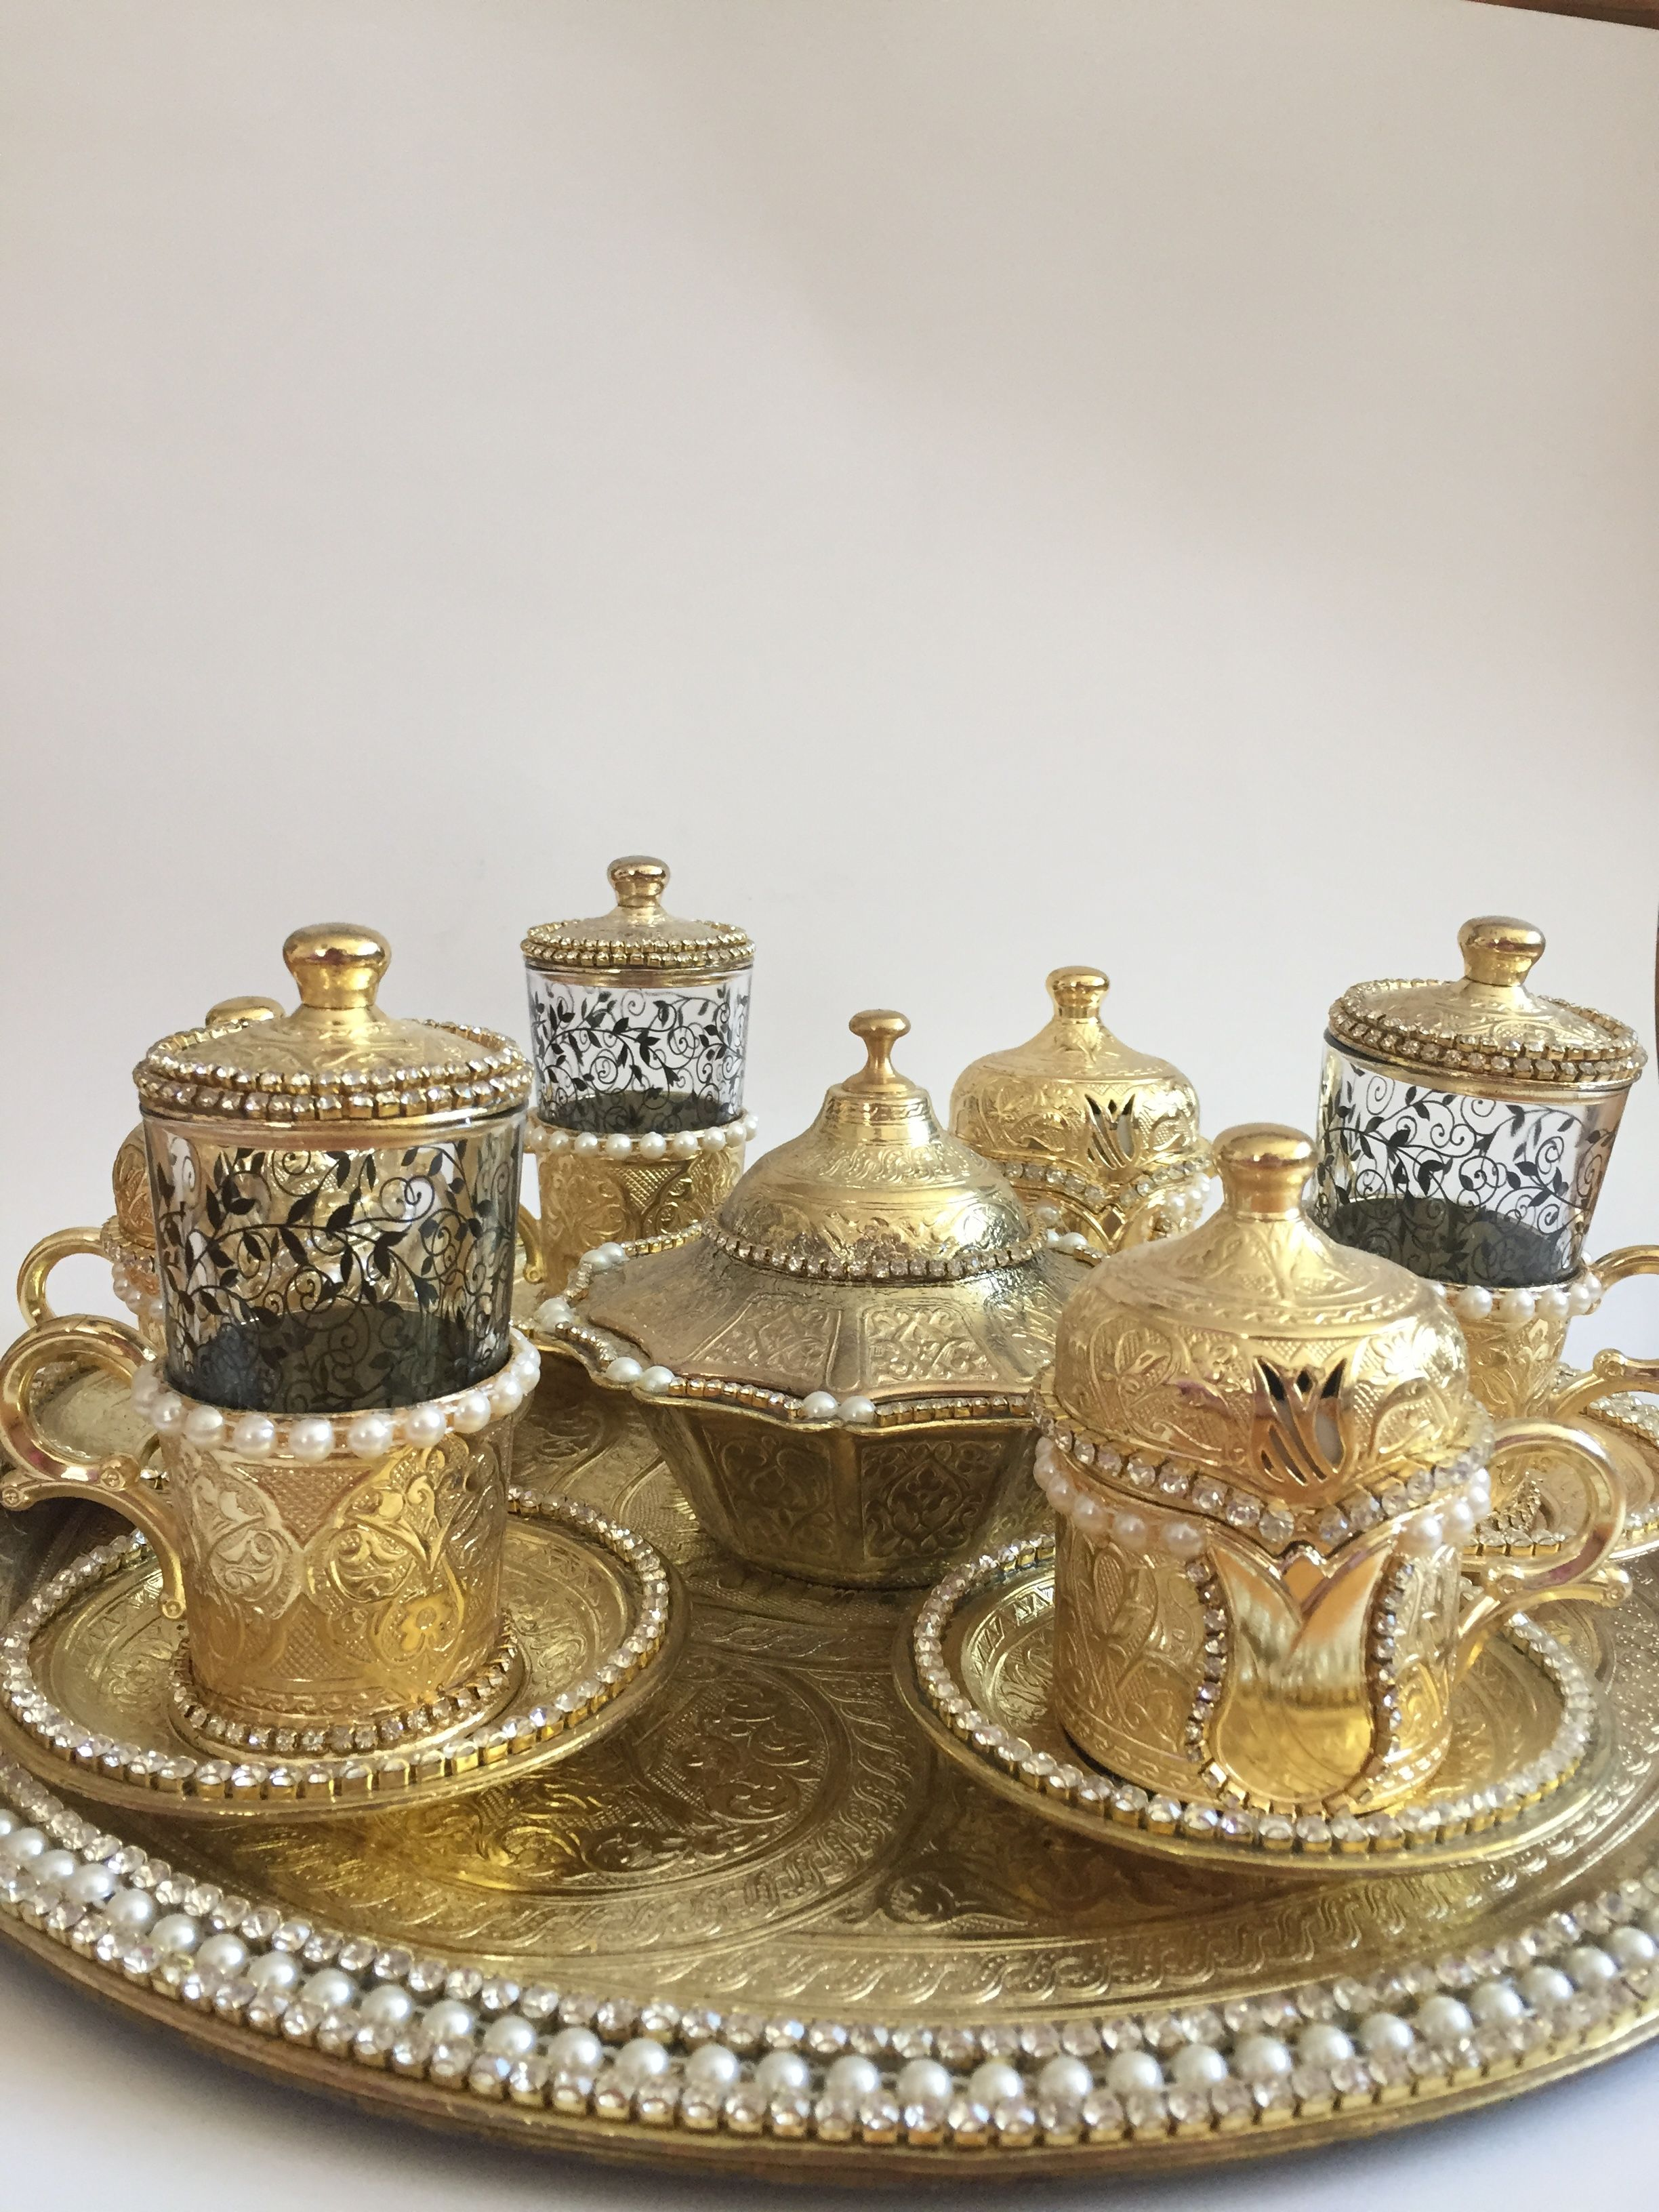 Grandbazaar Of Istanbul By Dony Tea Drink Water Turkish Coffee Serving Set Gold Colour Tulip Figure Engravings On Gl Cups Porcelain Pearl